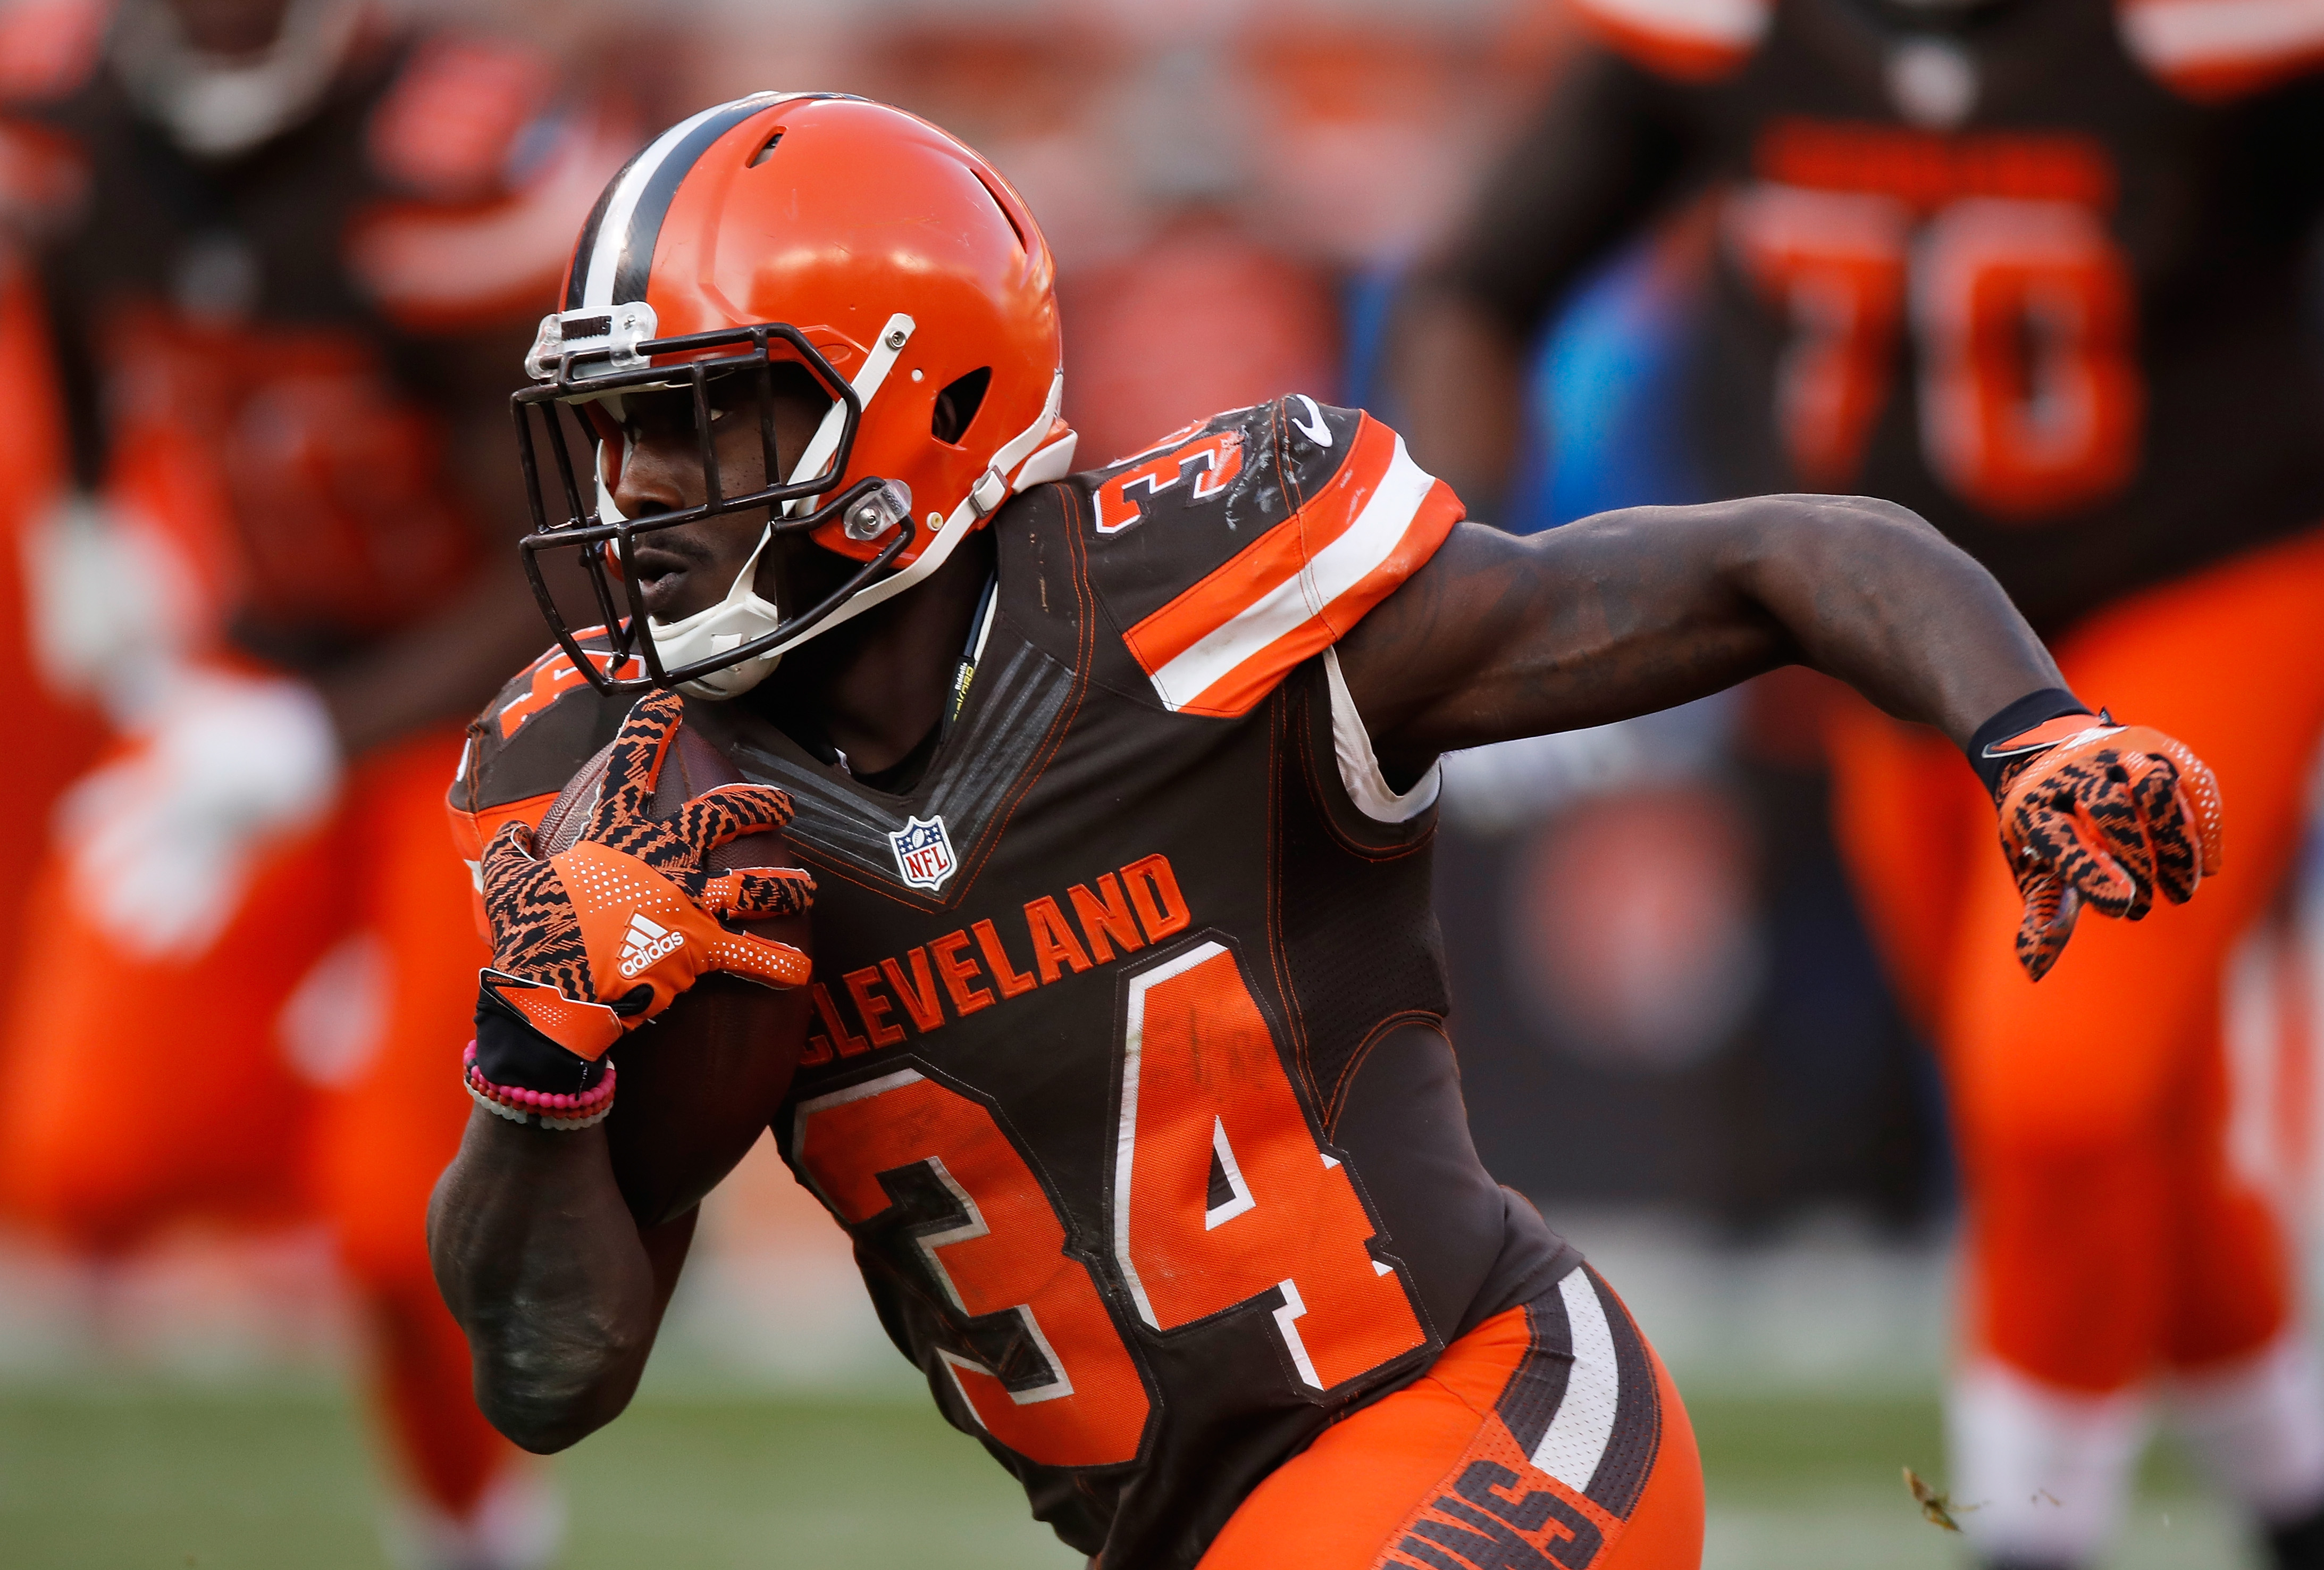 cincinnati bengals vs cleveland browns,  bengals browns point spread, bengals browns odds, bengals browns pick against the spread, over under, bengals browns prediction, latest, vegas line, bengals browns favored, today, point total